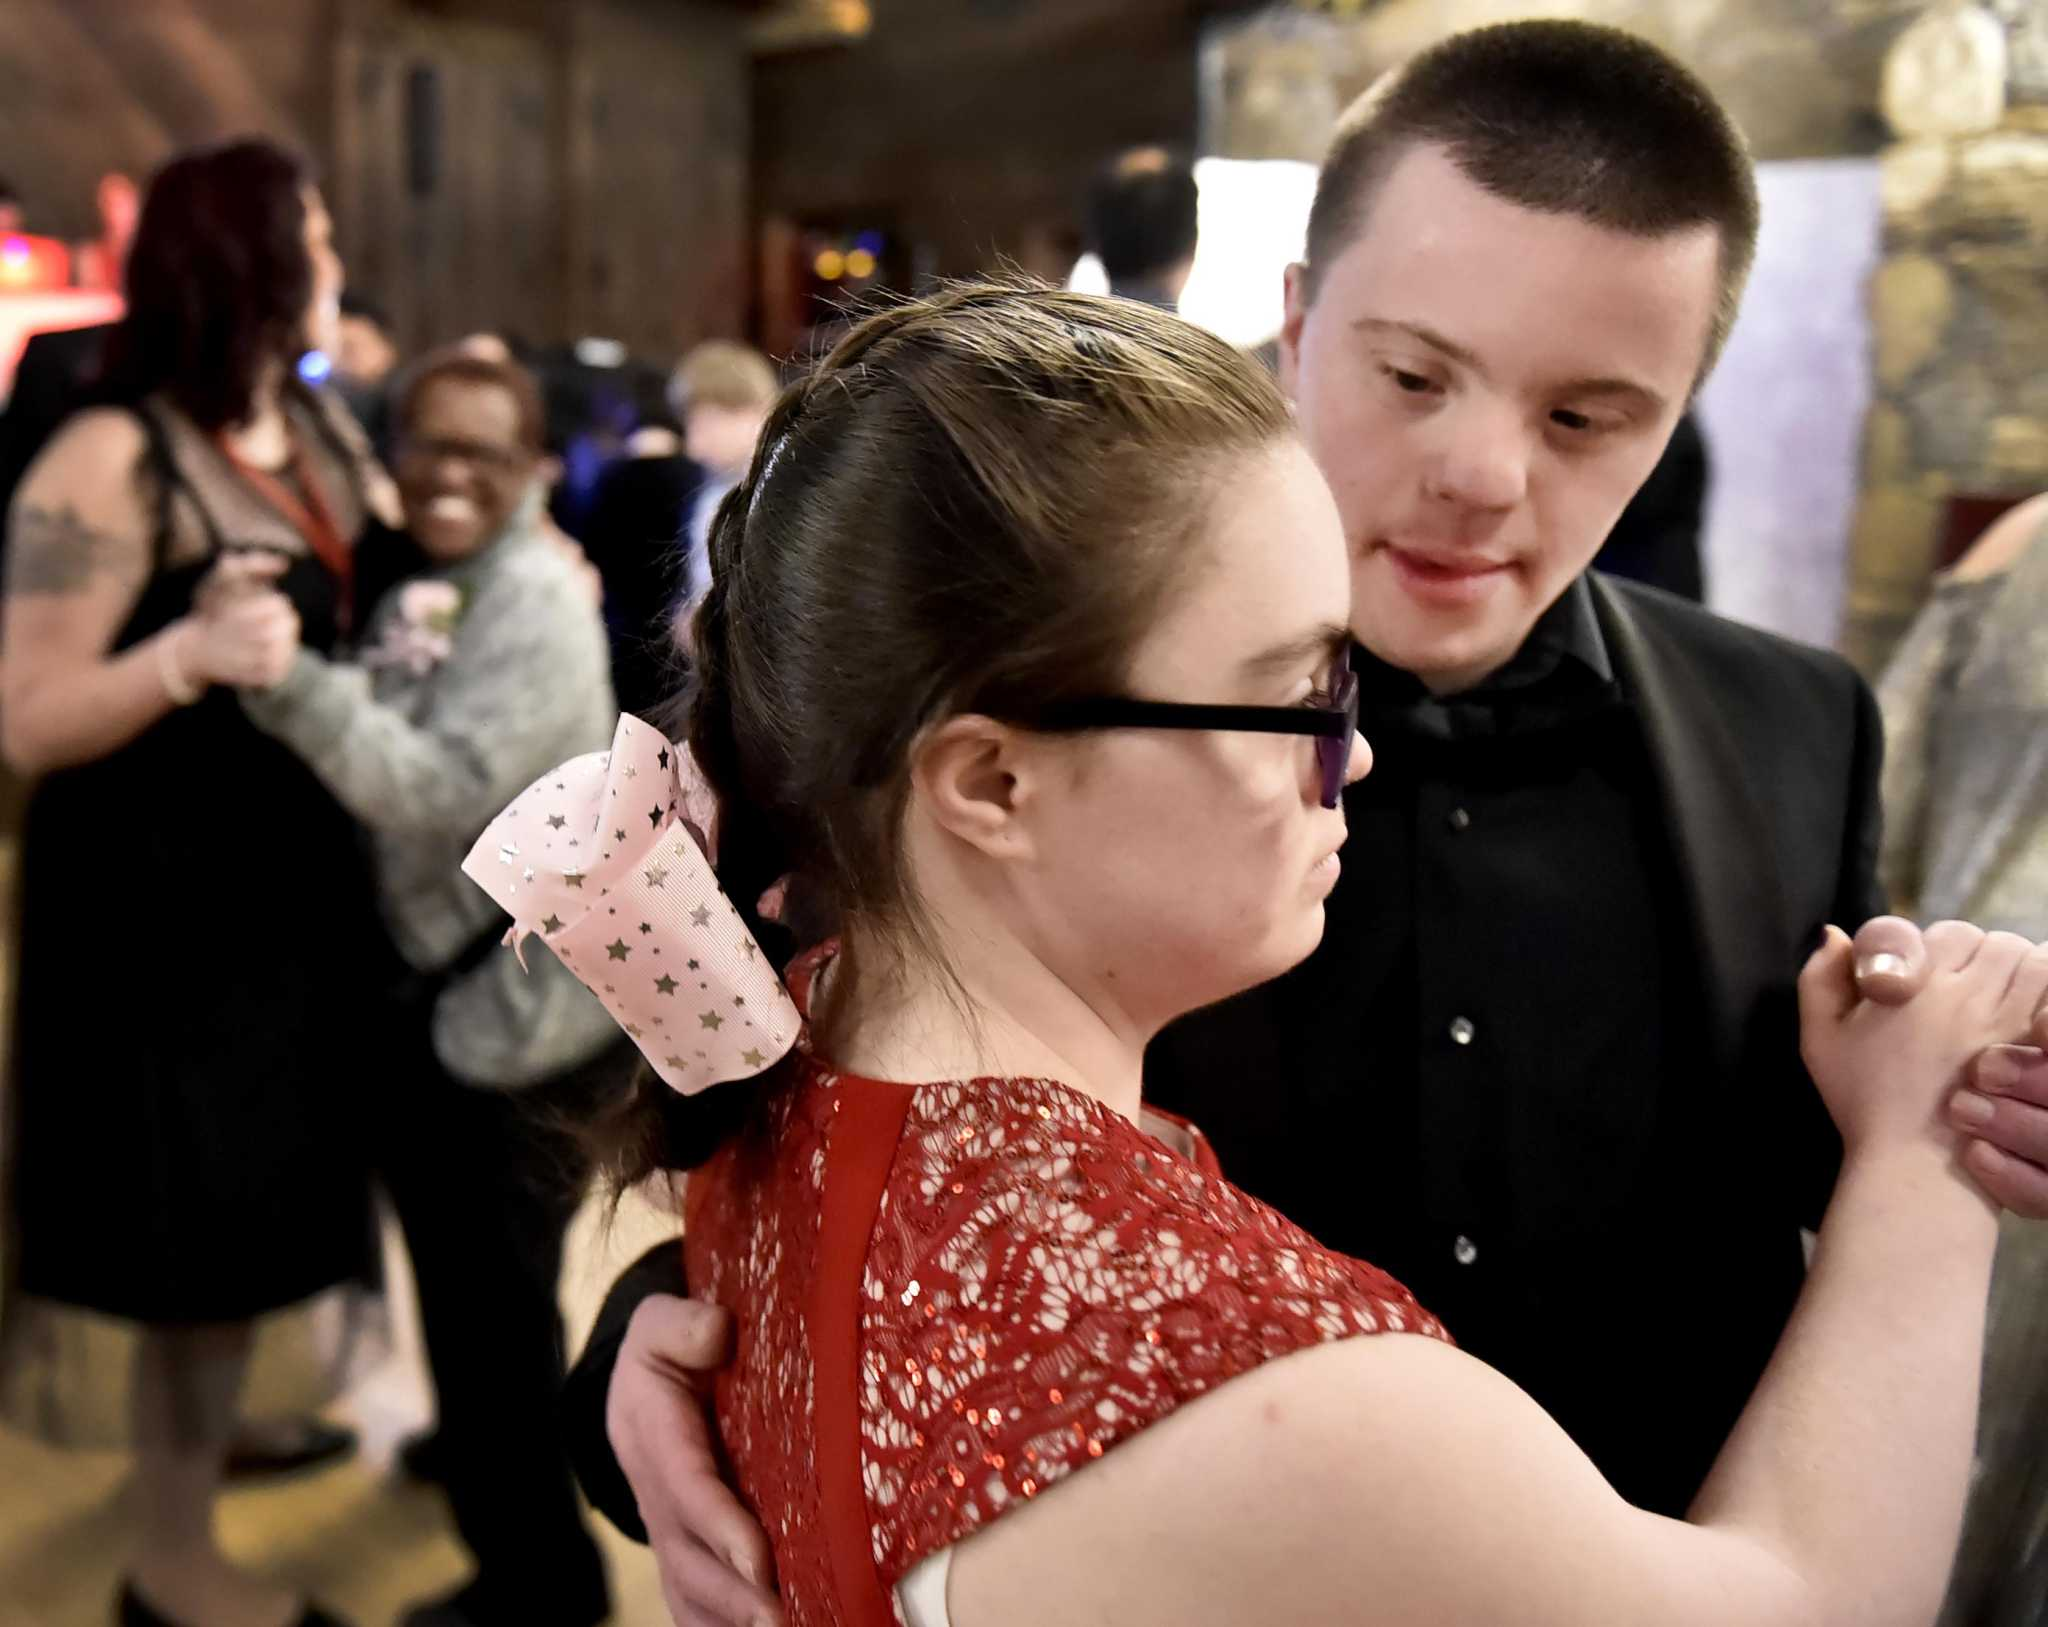 Prom held in Branford for CT persons with special needs